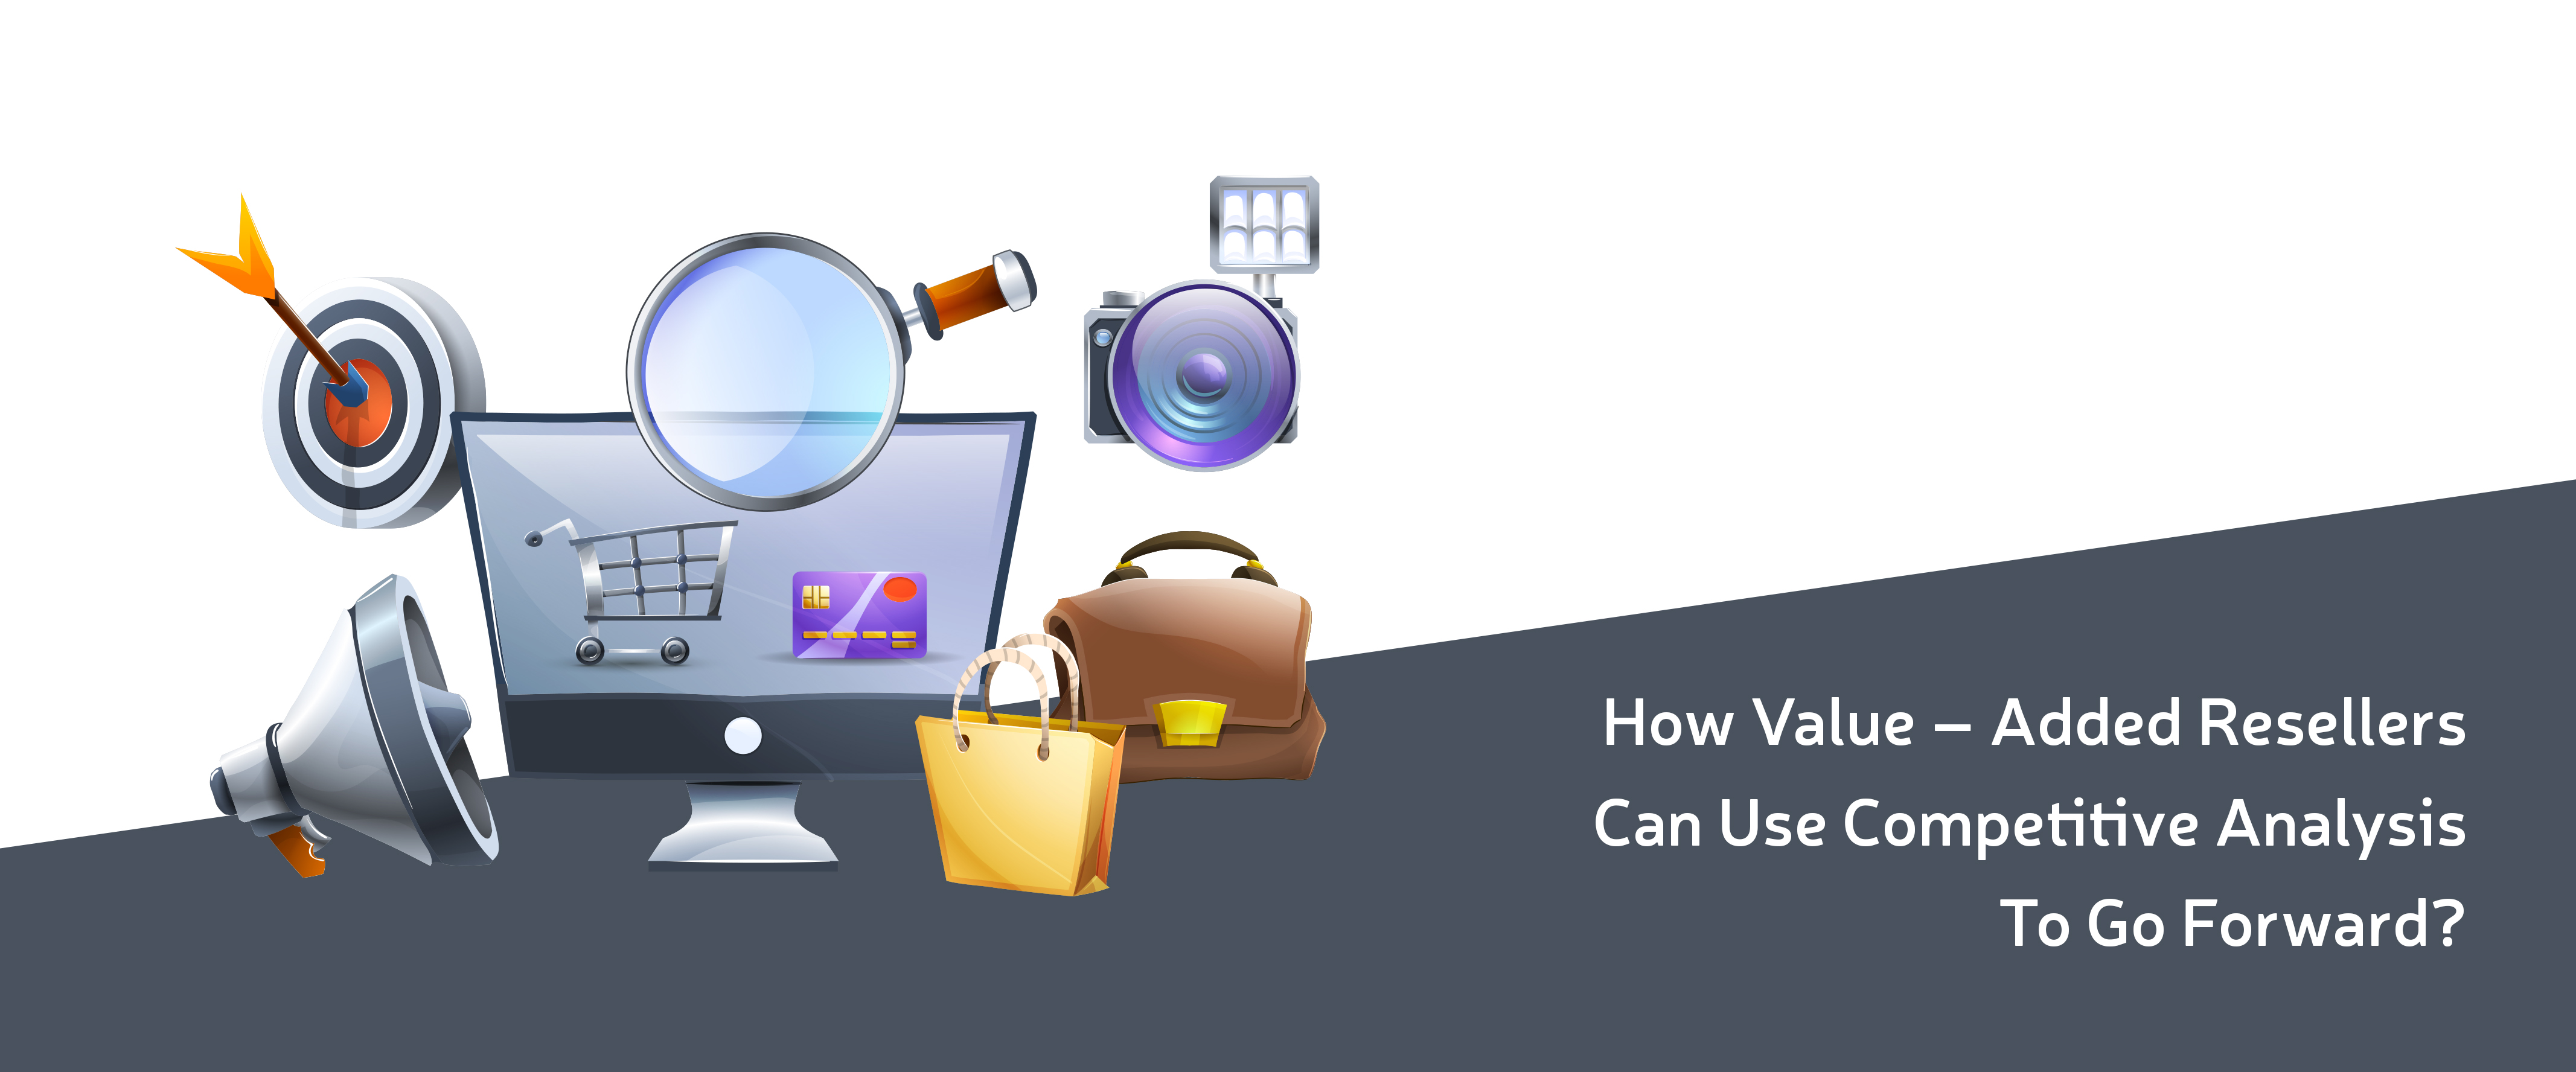 How Value – Added Resellers Can Use Competitive Analysis To Go Forward?